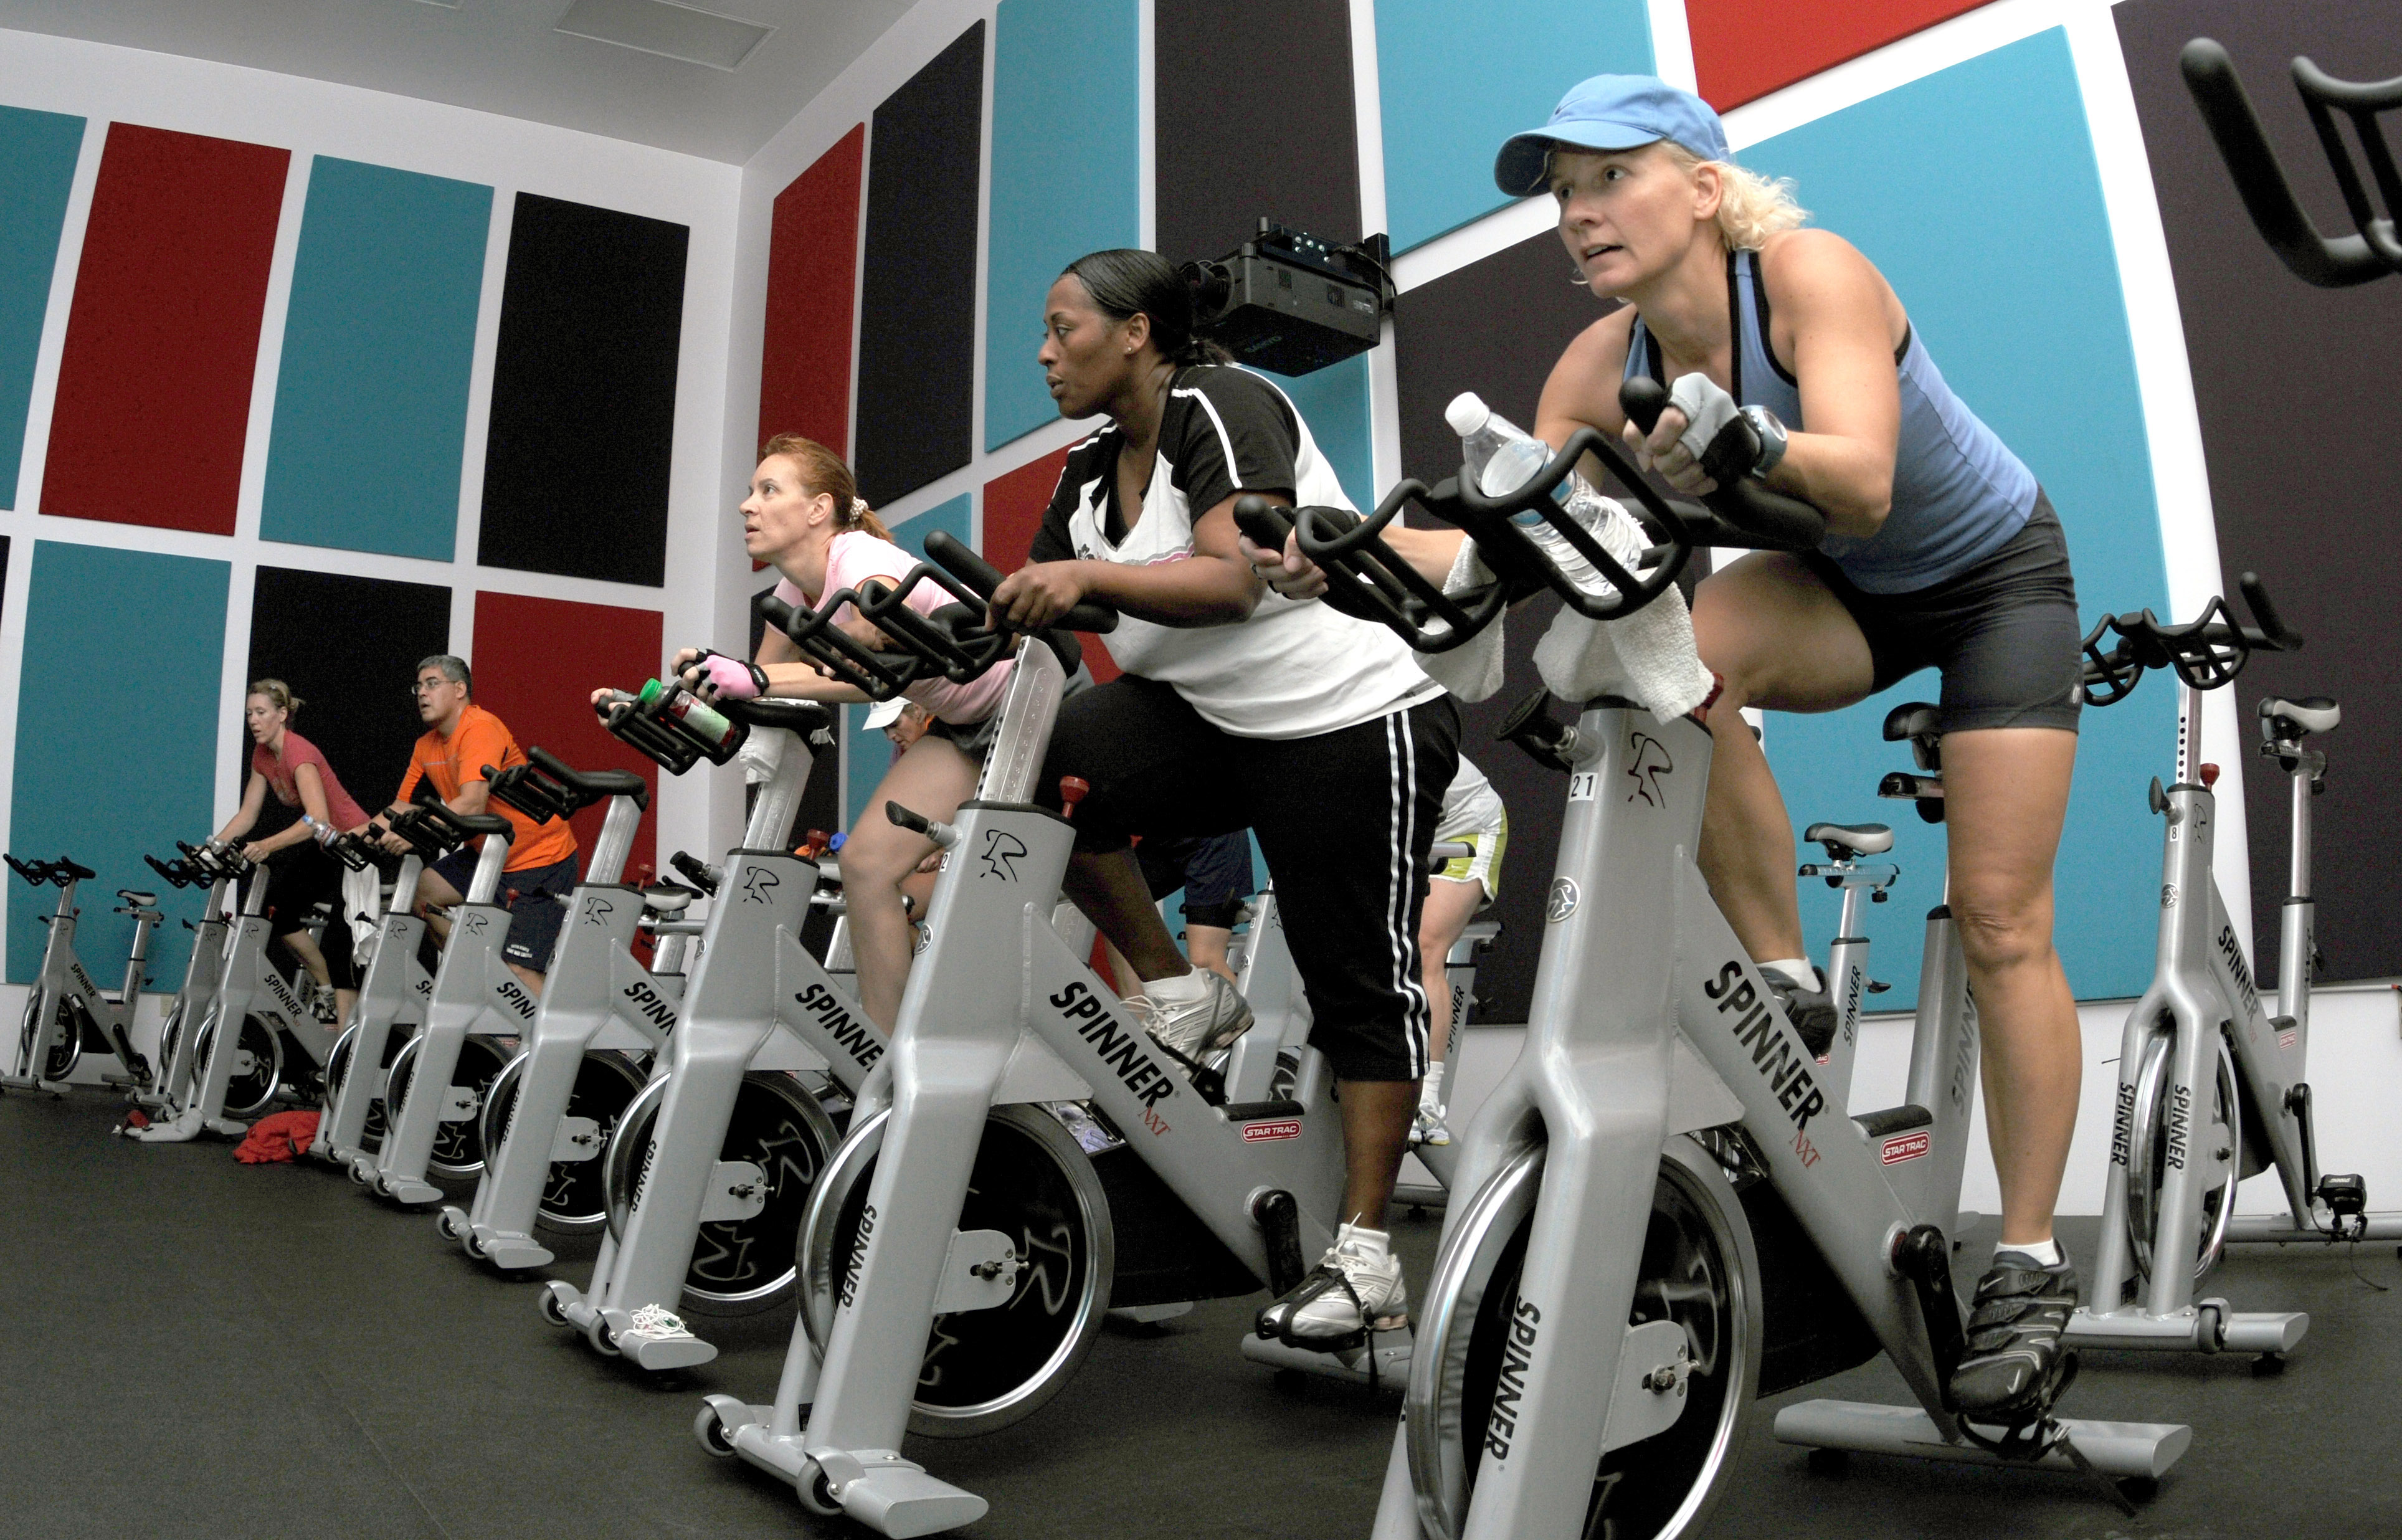 Fitness Center Offers New Spinning Class For Lunchtime